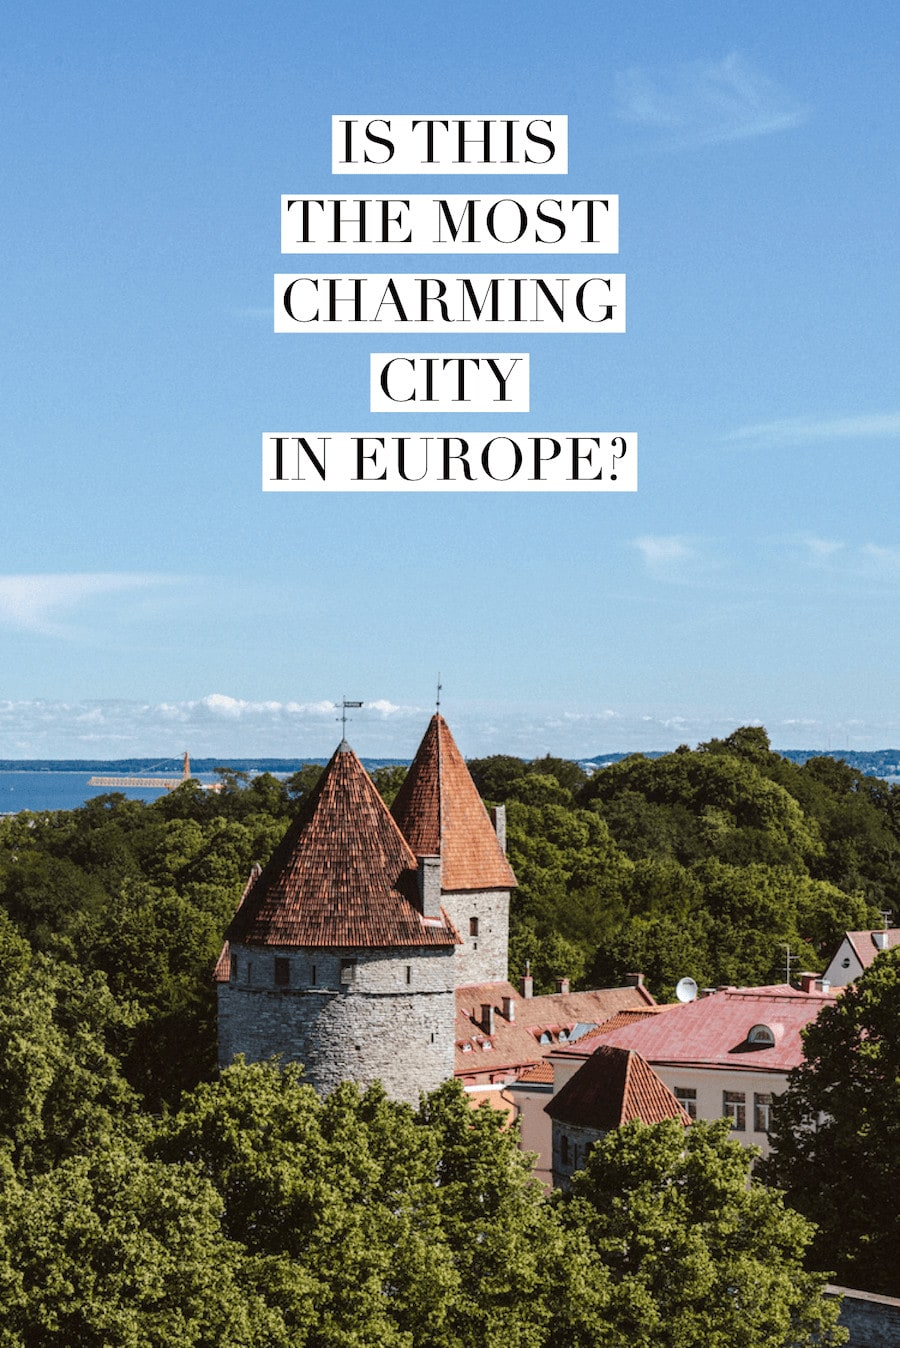 Is this the most charming city in Europe?